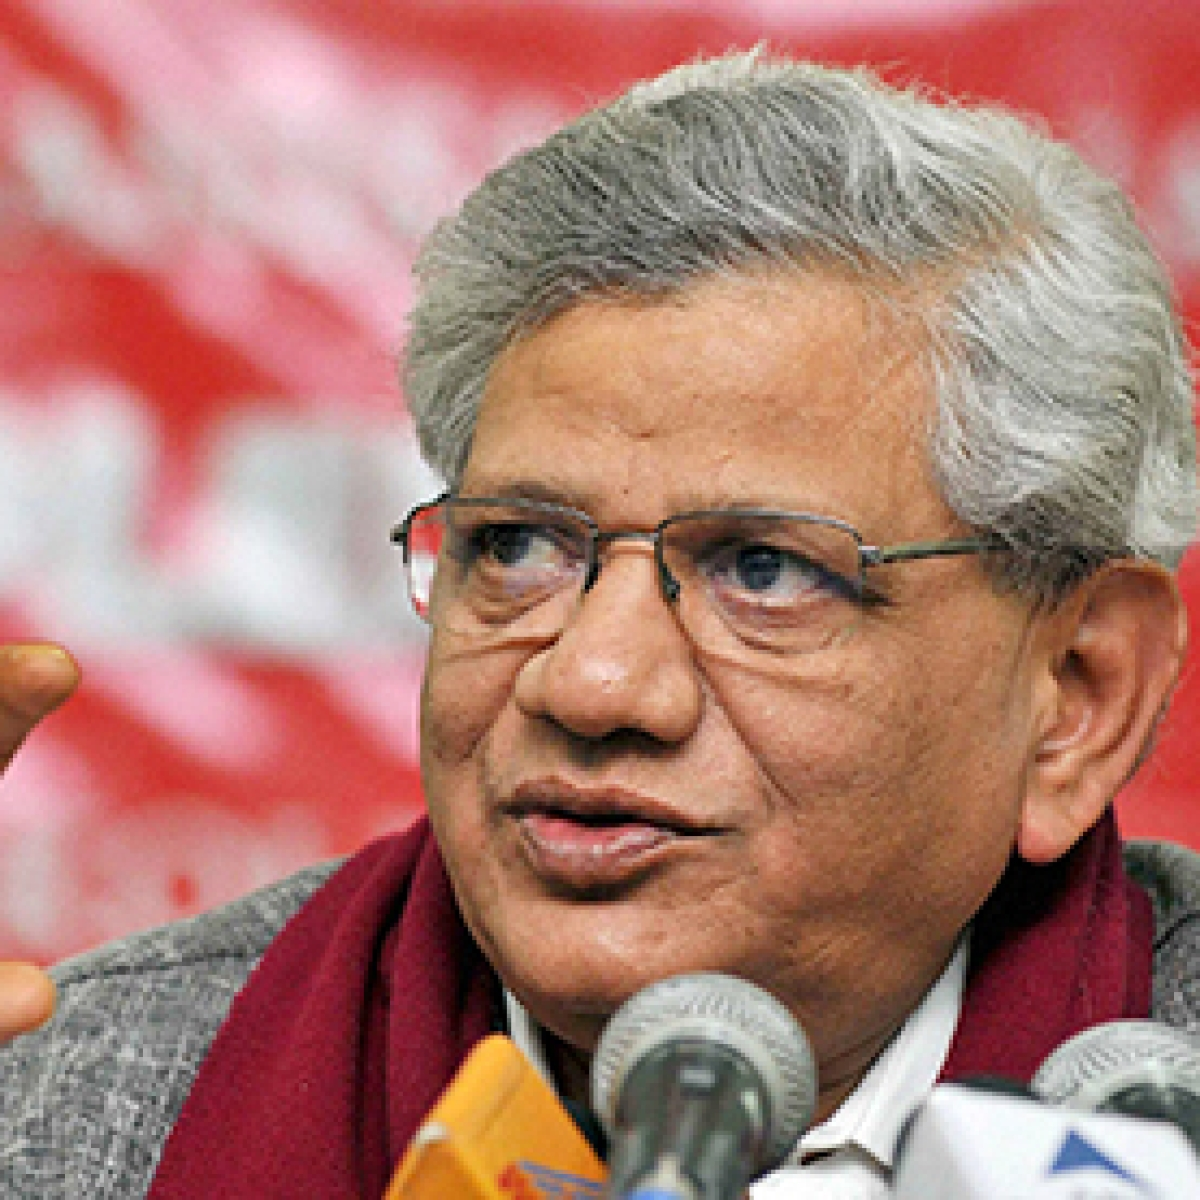 BJP patronises cult of violence, says Sitaram Yechury after ministers dismiss concerns expressed by celebrities